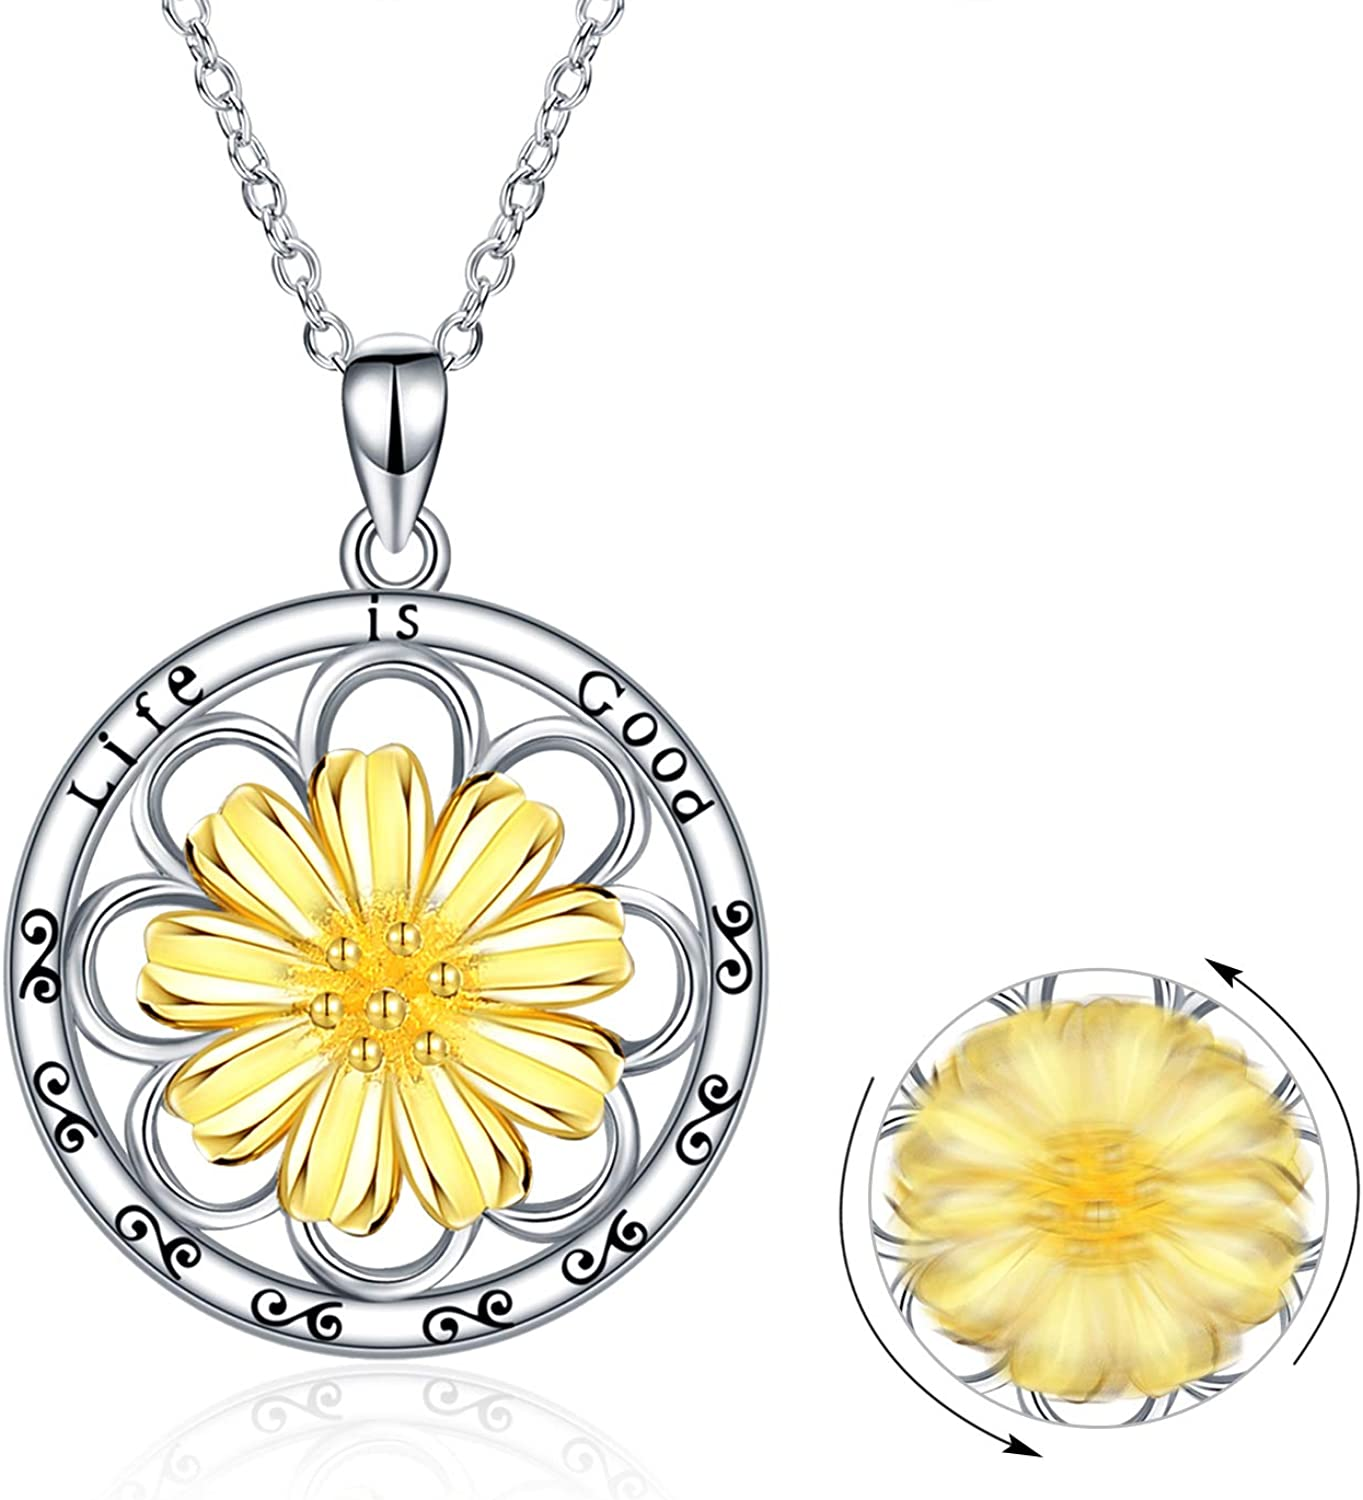 Personalized Name Necklace Hand Crafted Sterling Silver Daisy Flower Charm Necklace Mom of Two